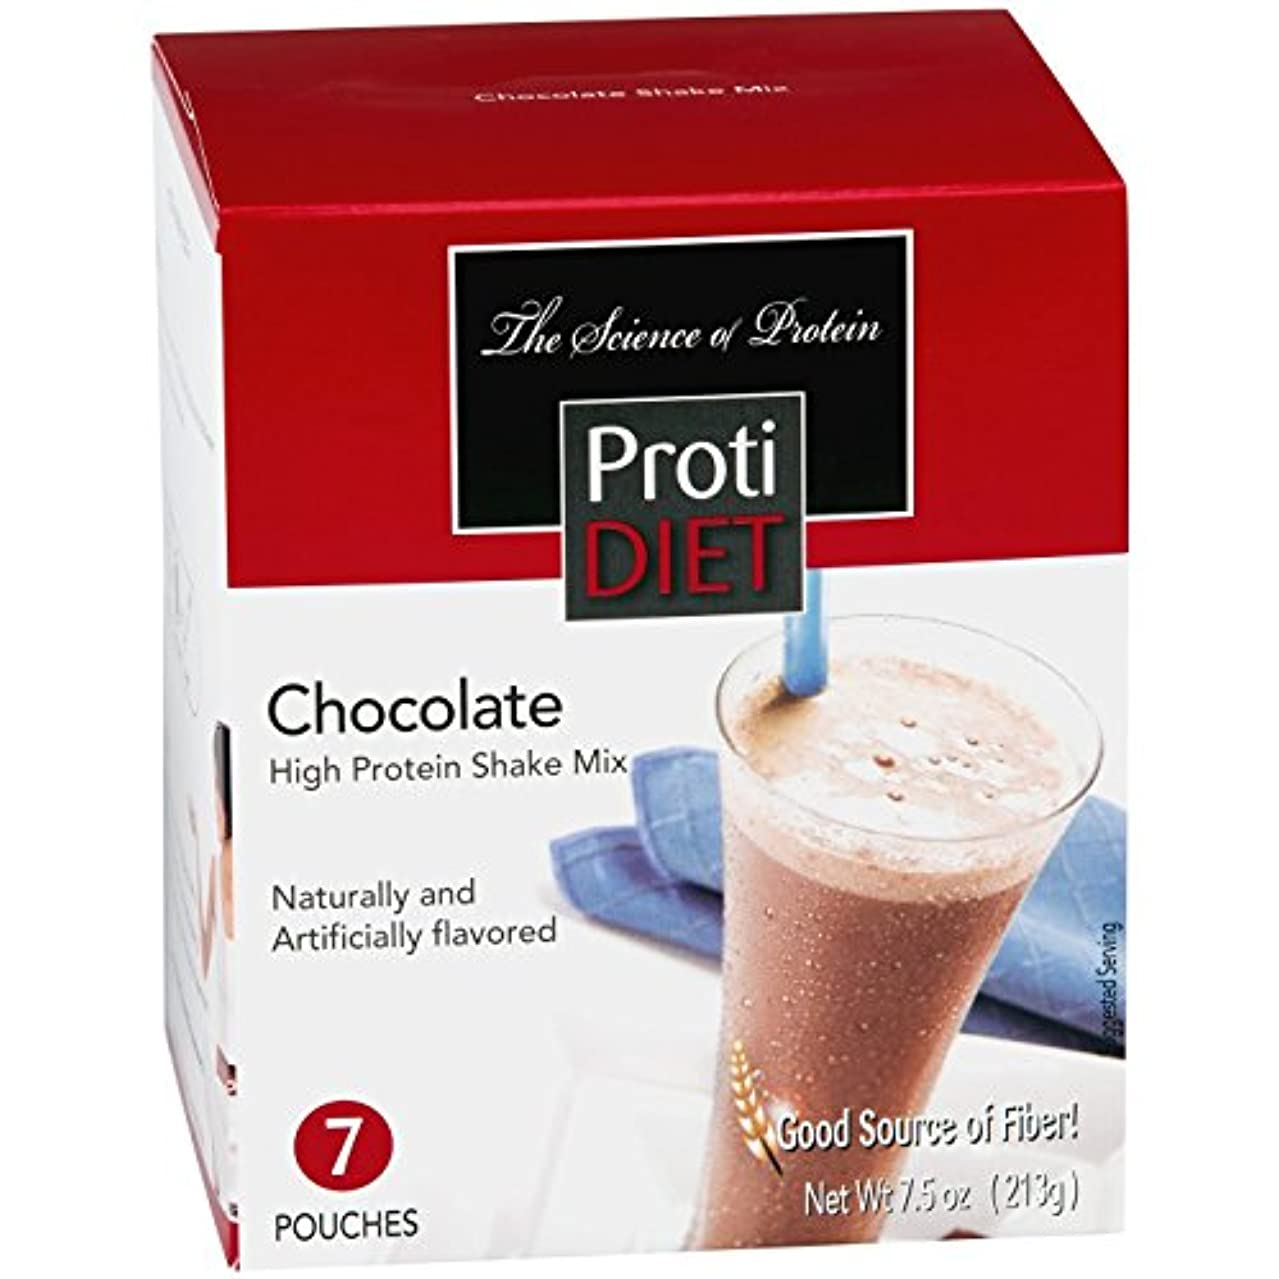 争い絶えずスペインProti Diet Chocolate Shake (7 pouches per box) Net Wt 7.5oz (213g) by Protidiet